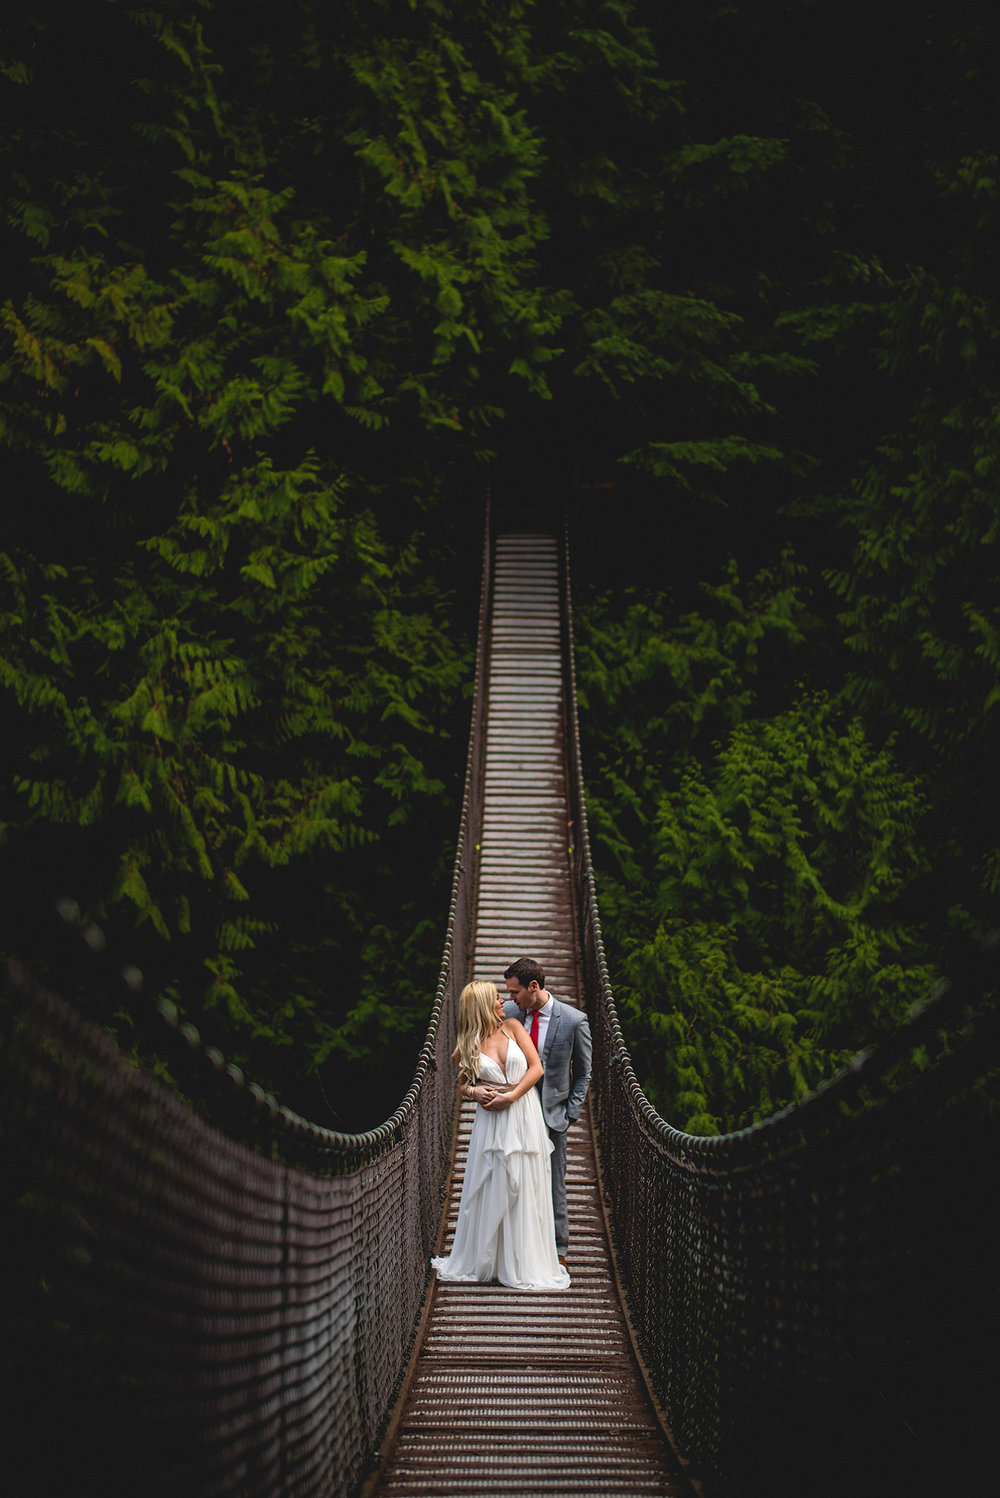 Vancouver Wedding Photographers - Portland Wedding Photographers - Studio 22 Photography - Destination Wedding Photographer